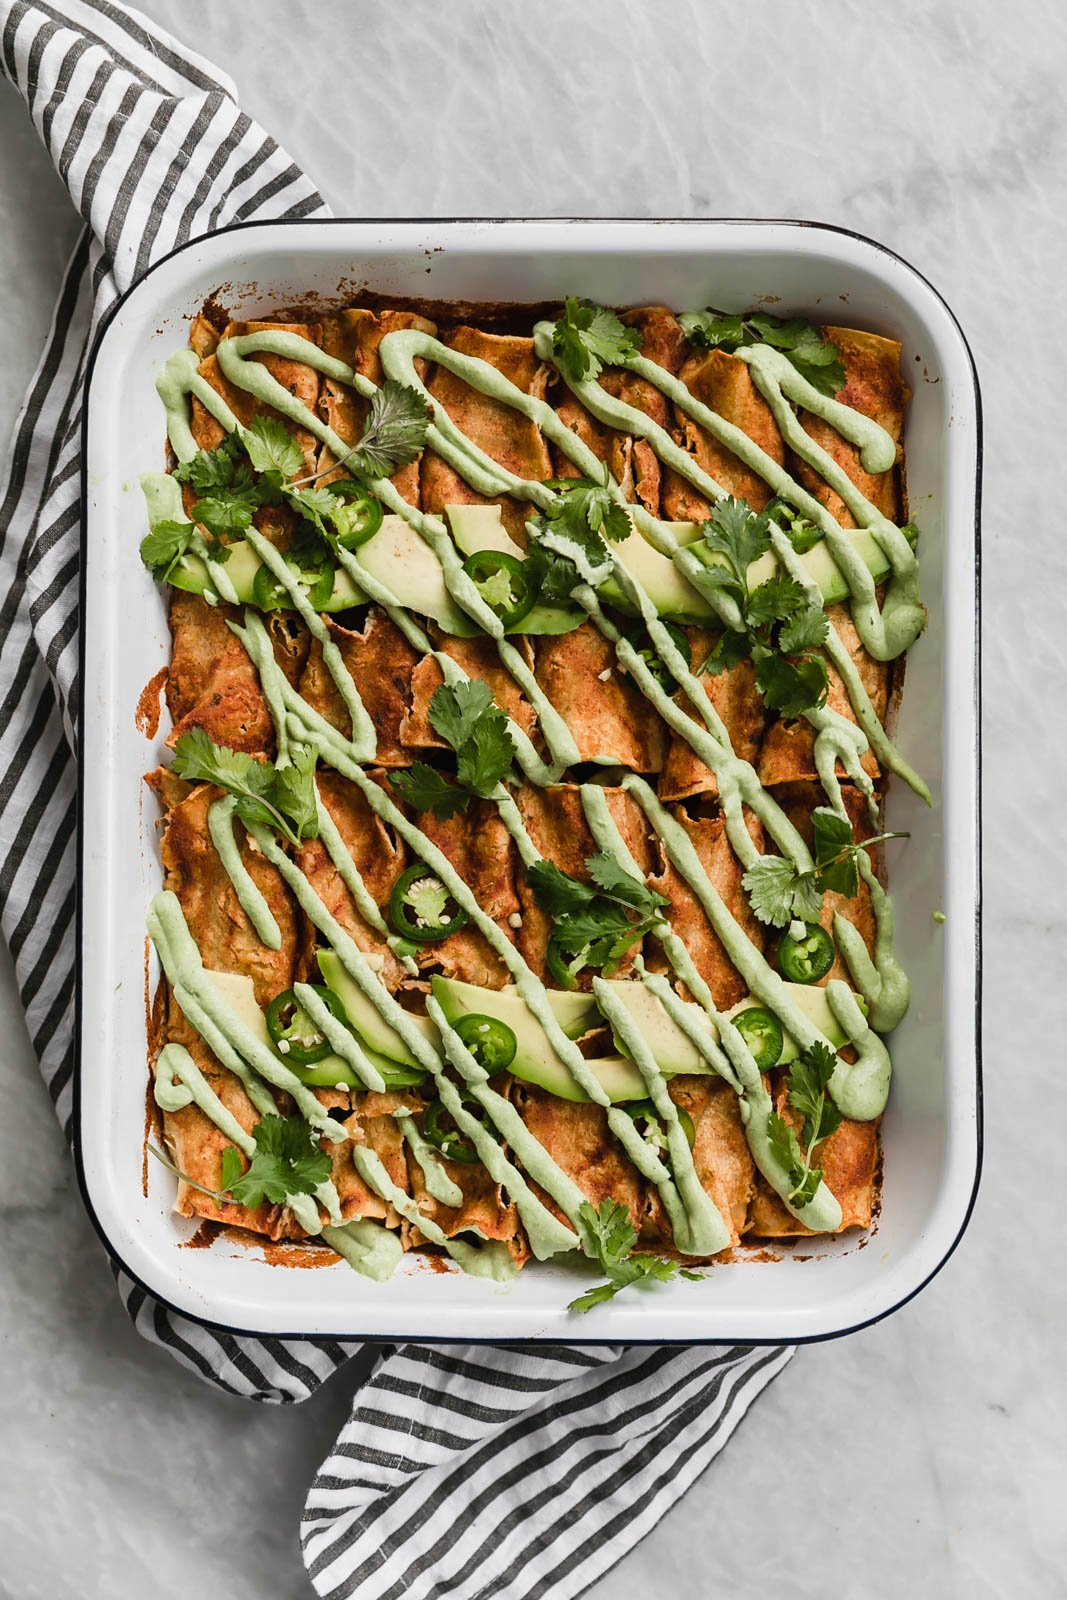 butternut squash enchiladas in a white baking dish topped with avocado, jalapeño and cilantro